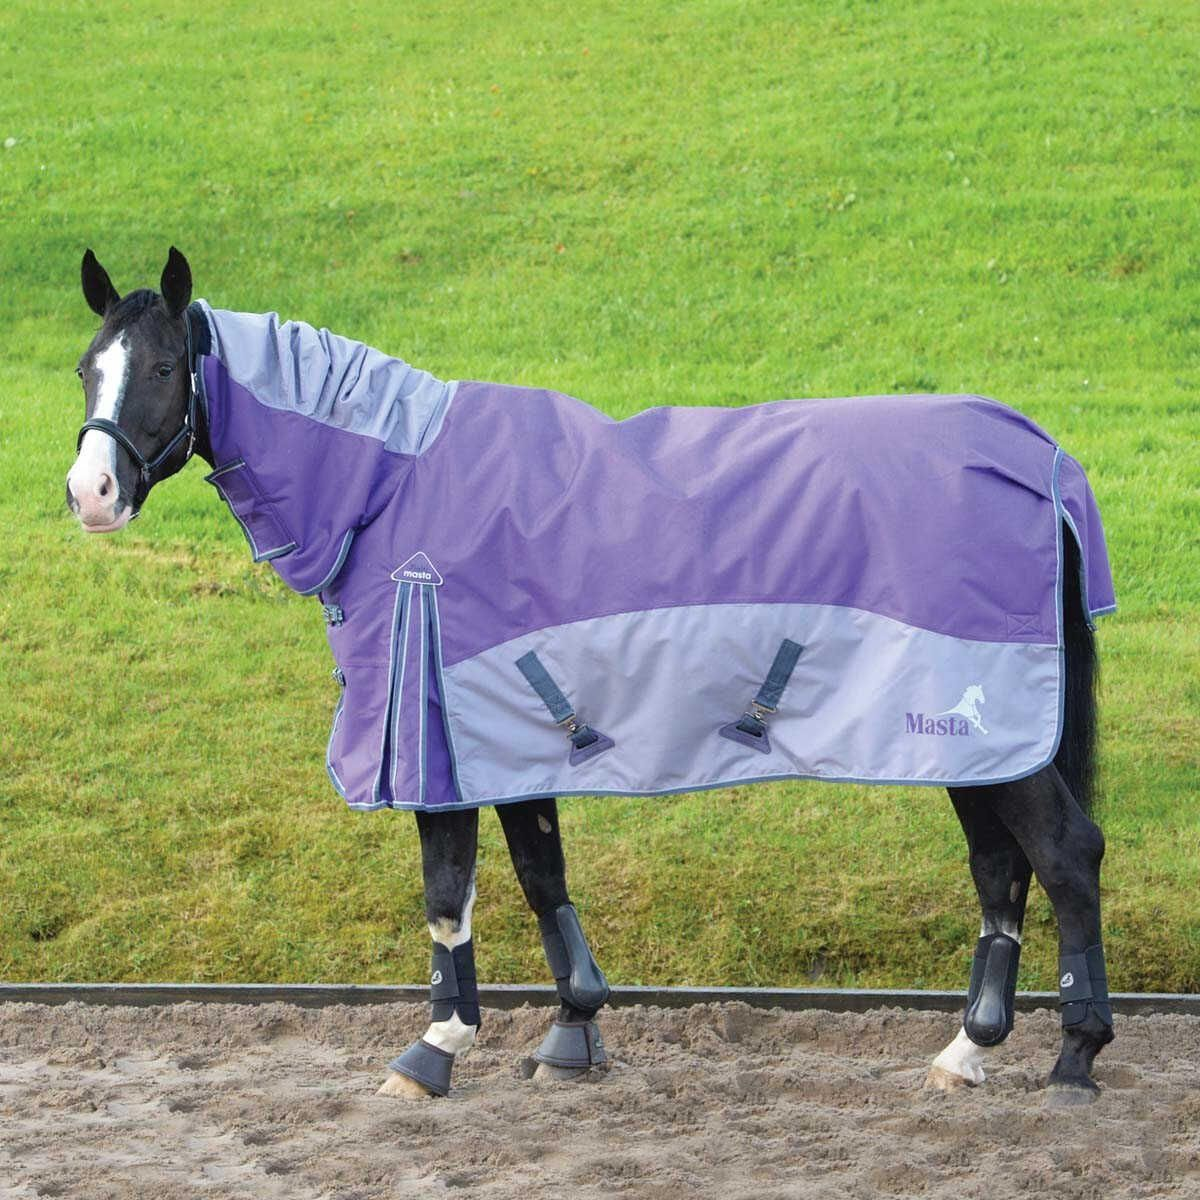 Field Masta Fixed Neck Turnout 350g Heavy Rug